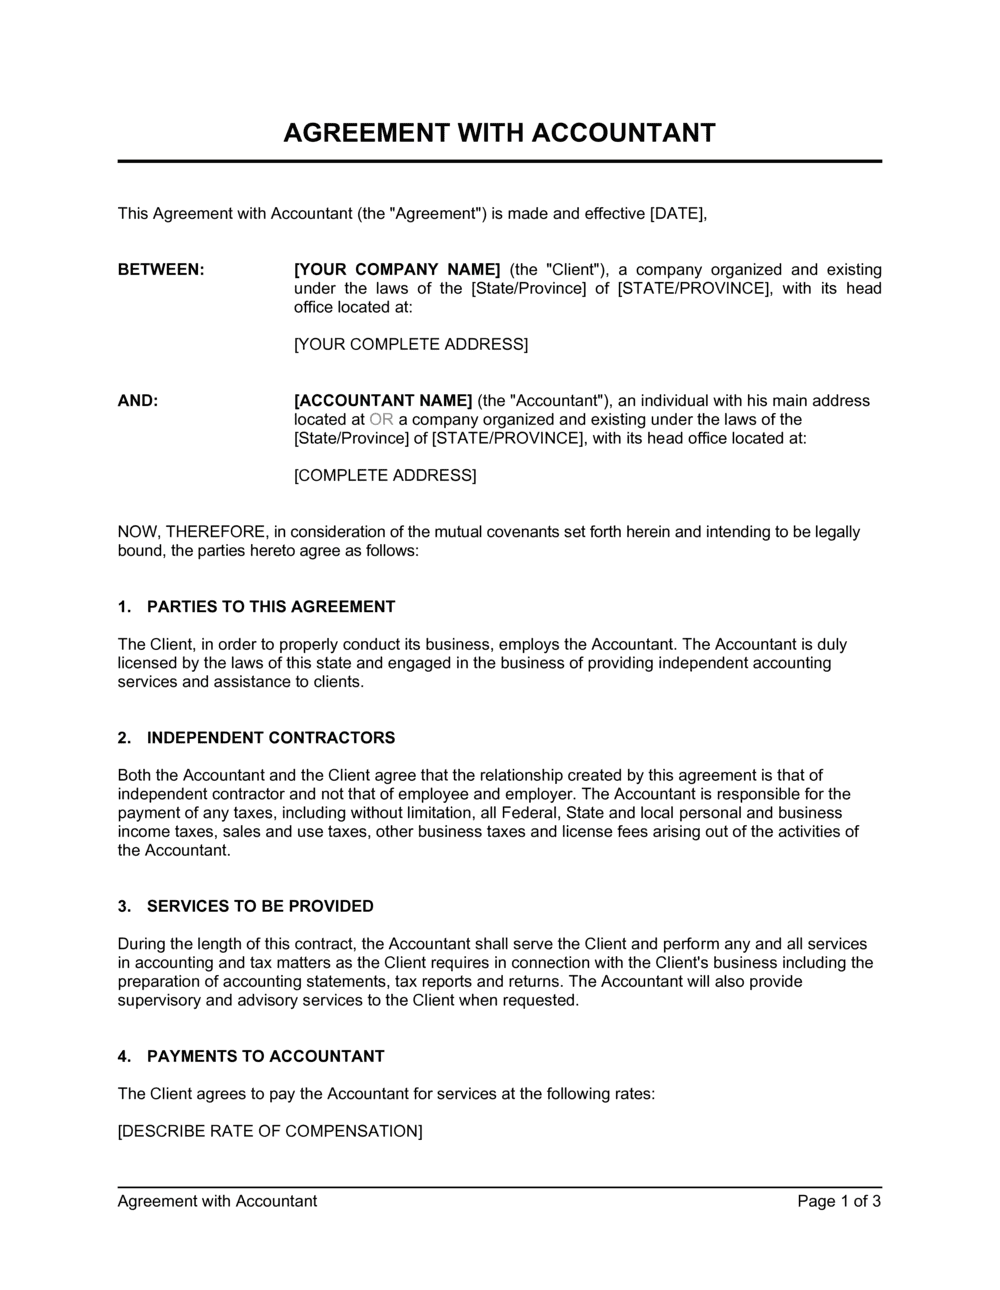 Business-in-a-Box's Agreement with Accountant Template